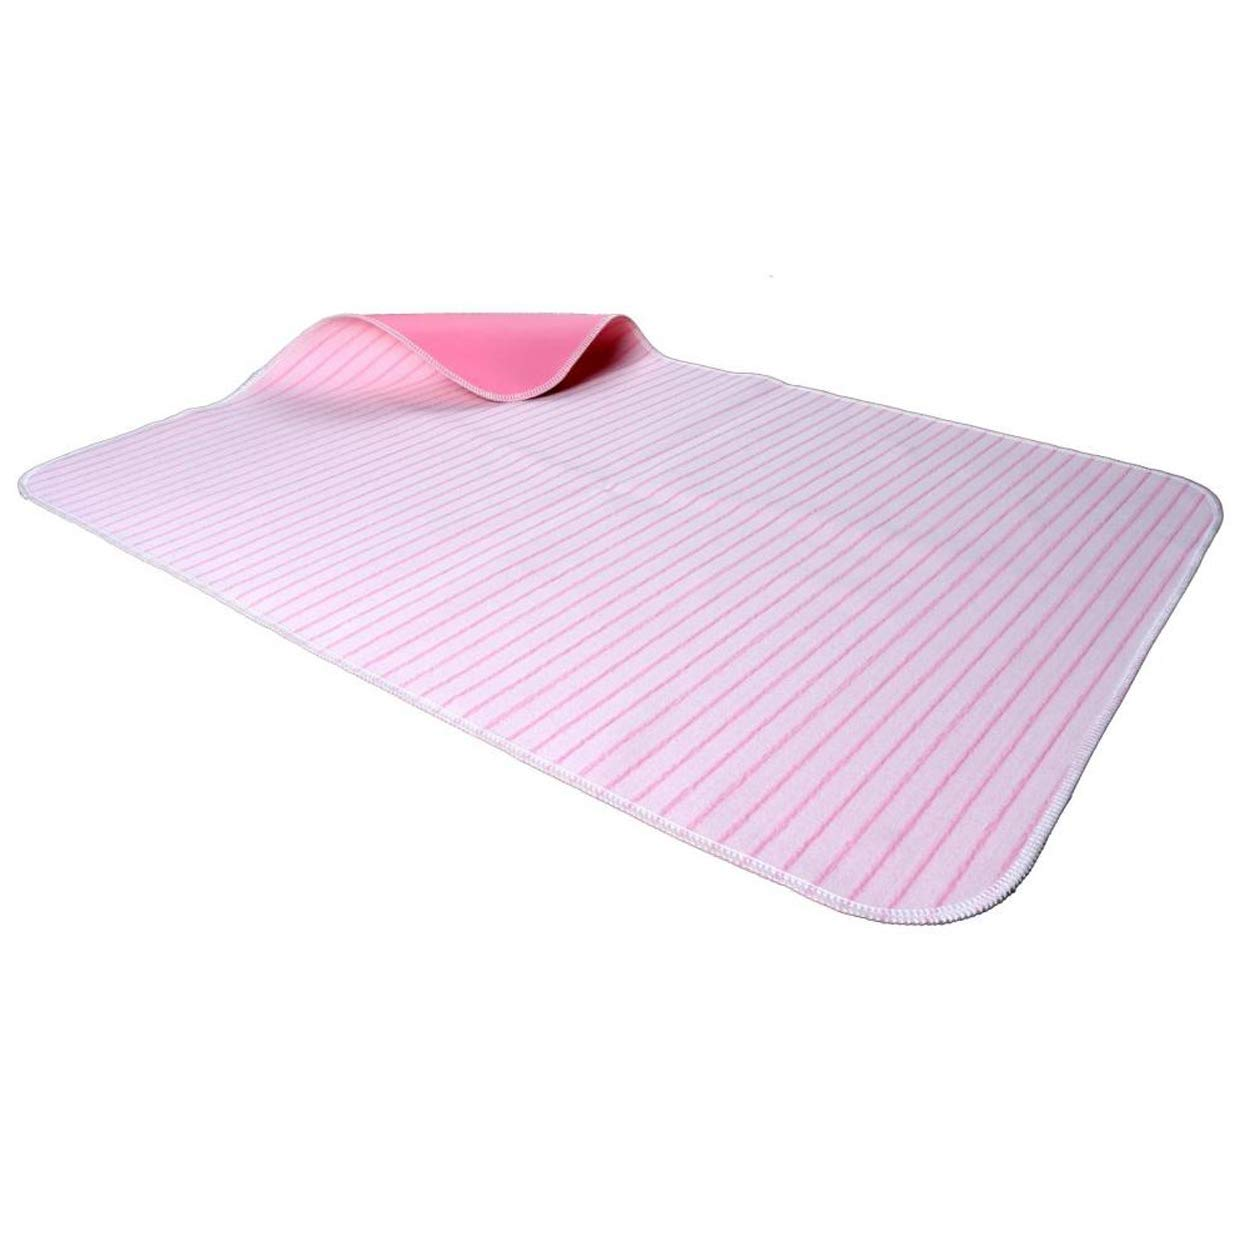 Ggsrtesxs Bed Pad Adult Incontinence Baby Patient Women Absorbent Quality Plus Cotton Anti-Scratch Quilted Waterproof Reusable Washable Pink,95x120cm by Ggsrtesxs